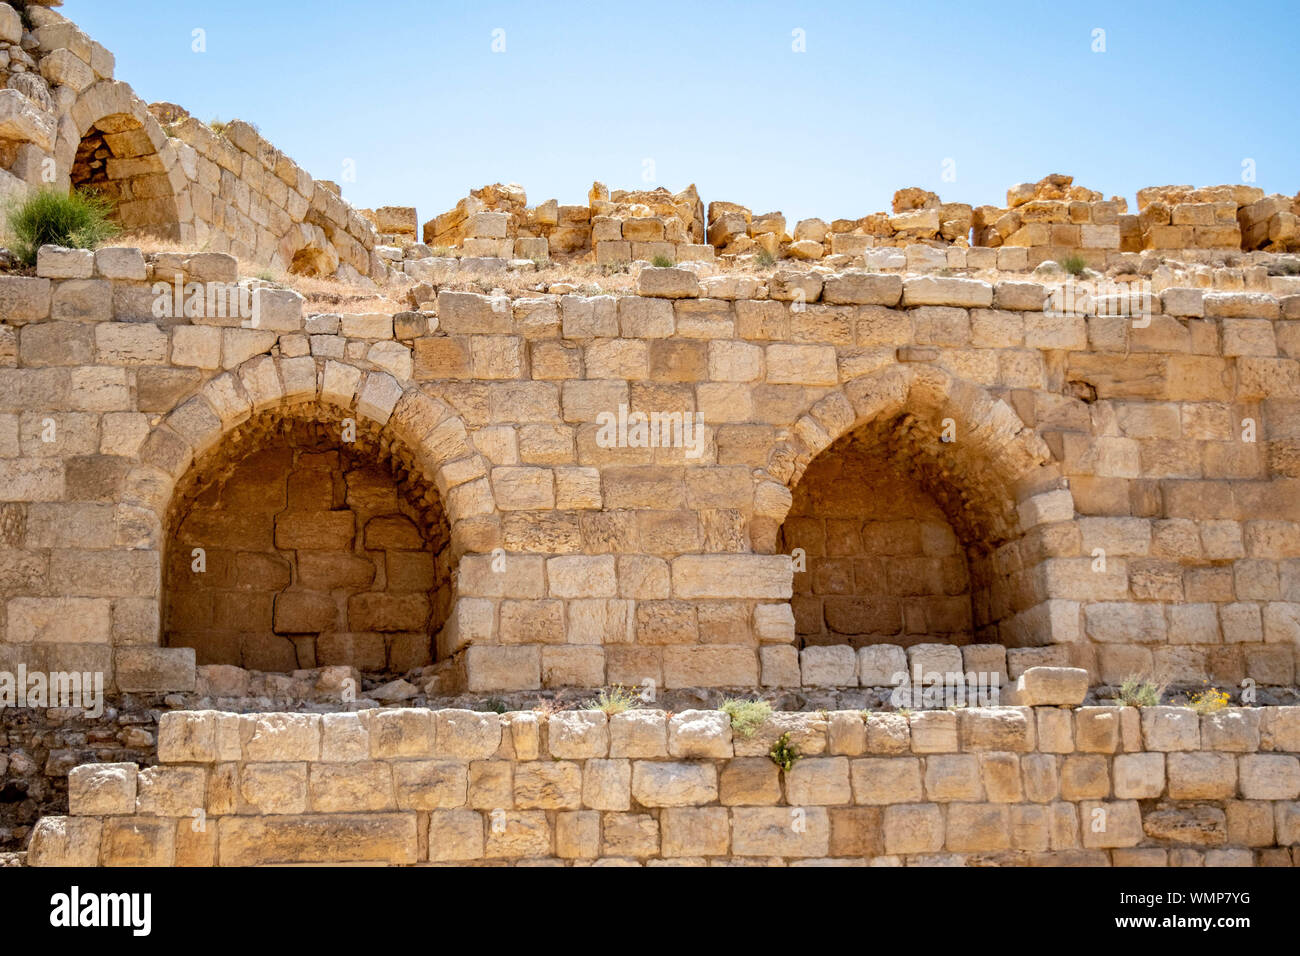 Stone arches found in the ancient Crusaders castle at Kerak, on the Kings Higway in Jordan. Stock Photo